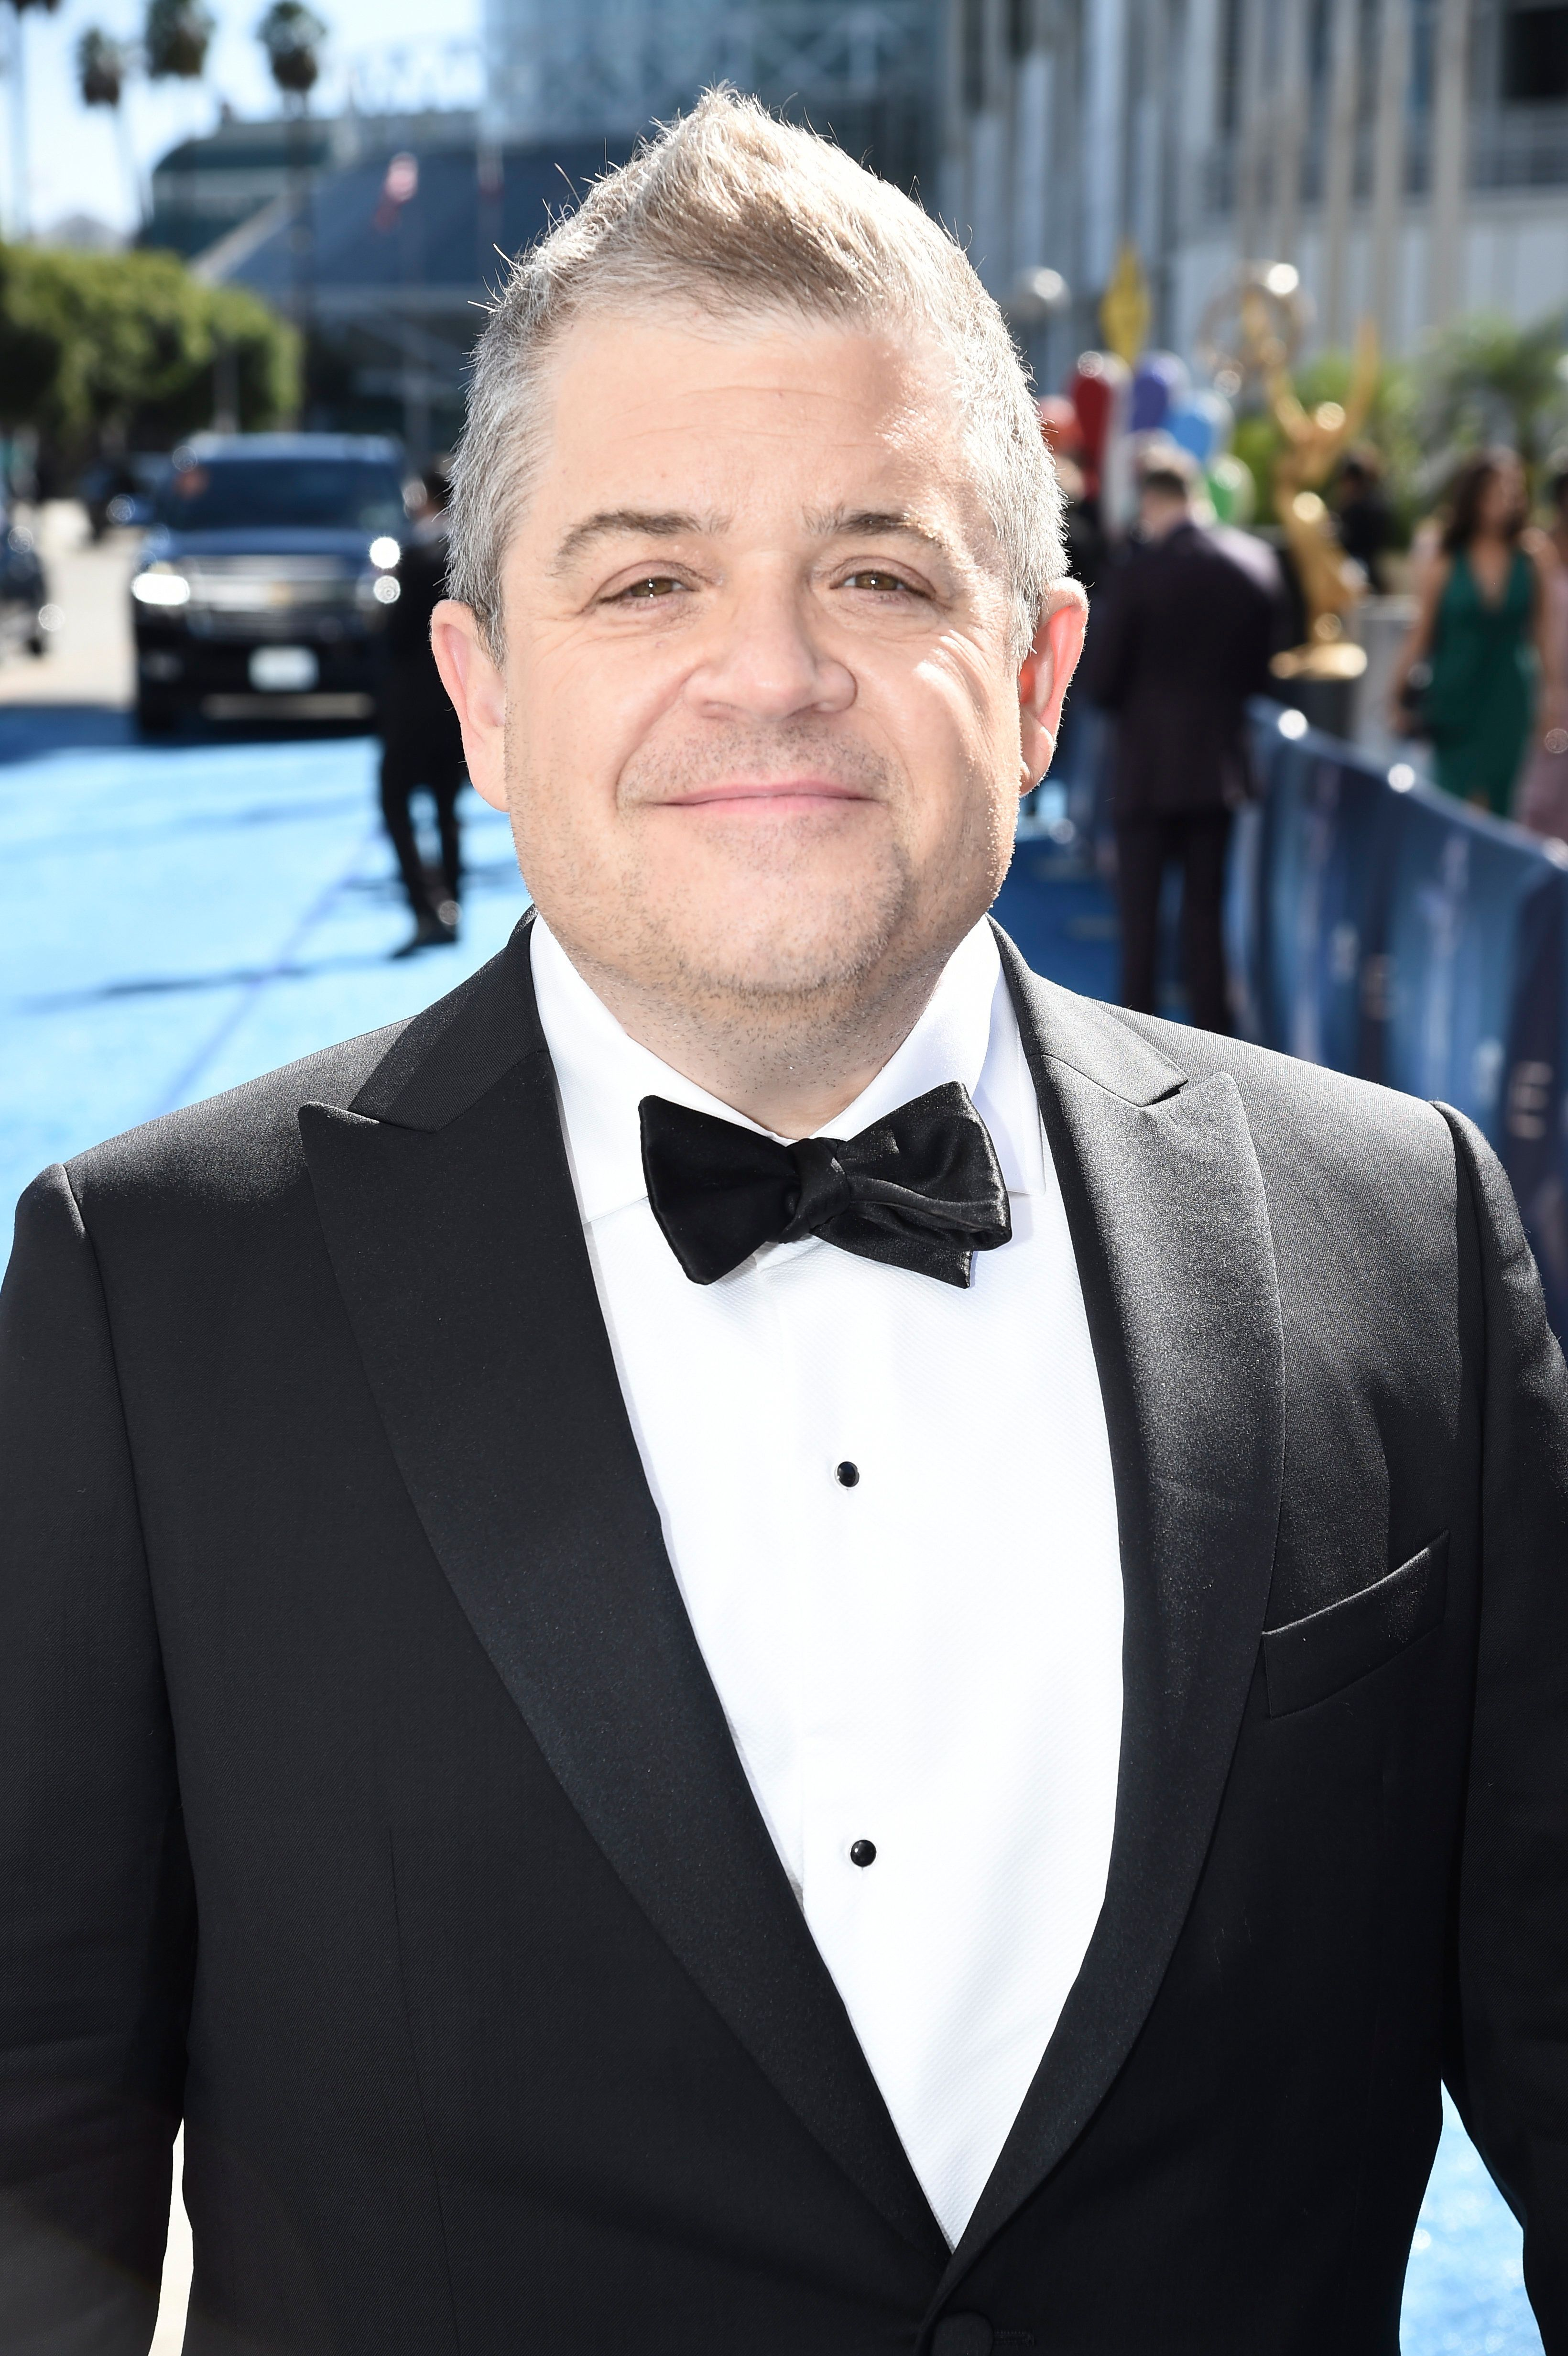 EXCLUSIVE - Patton Oswalt arrives at the 70th Primetime Emmy Awards on Monday, Sept. 17, 2018, at the Microsoft Theater in Los Angeles. (Photo by Dan Steinberg/Invision for the Television Academy/AP Images)